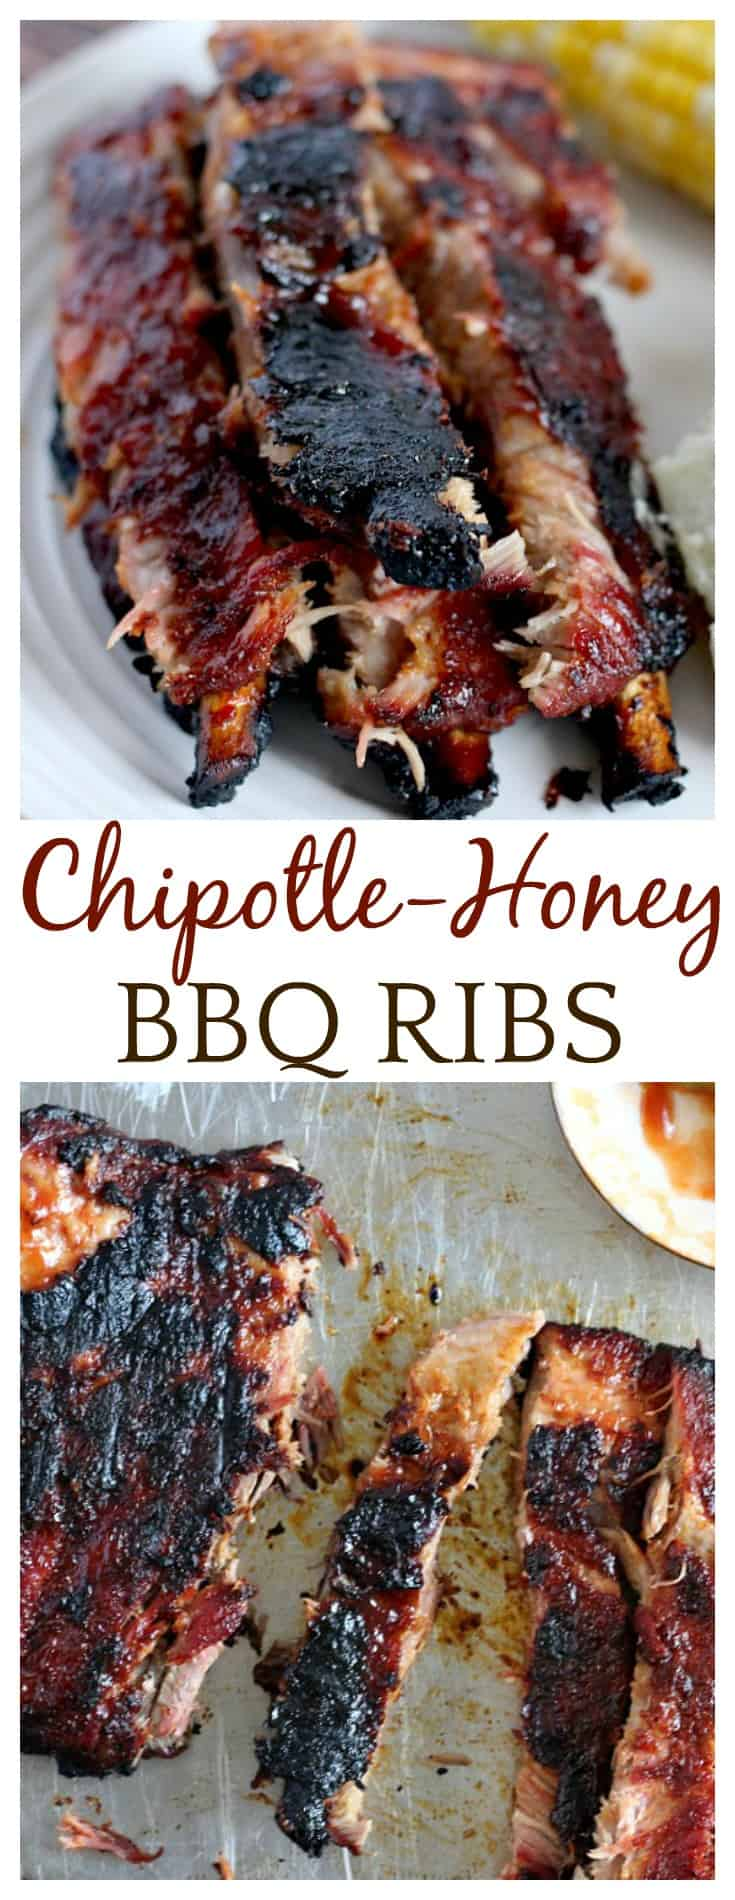 I first made this Chipotle-Honey Barbecue Spareribs recipe around Memorial Day and can't even tell you how many times it's been requested since then!  I had to share it!  These ribs give you a nice balance of smoky chipotle heat and sticky honey sweetness - a perfect way to end grilling season right!